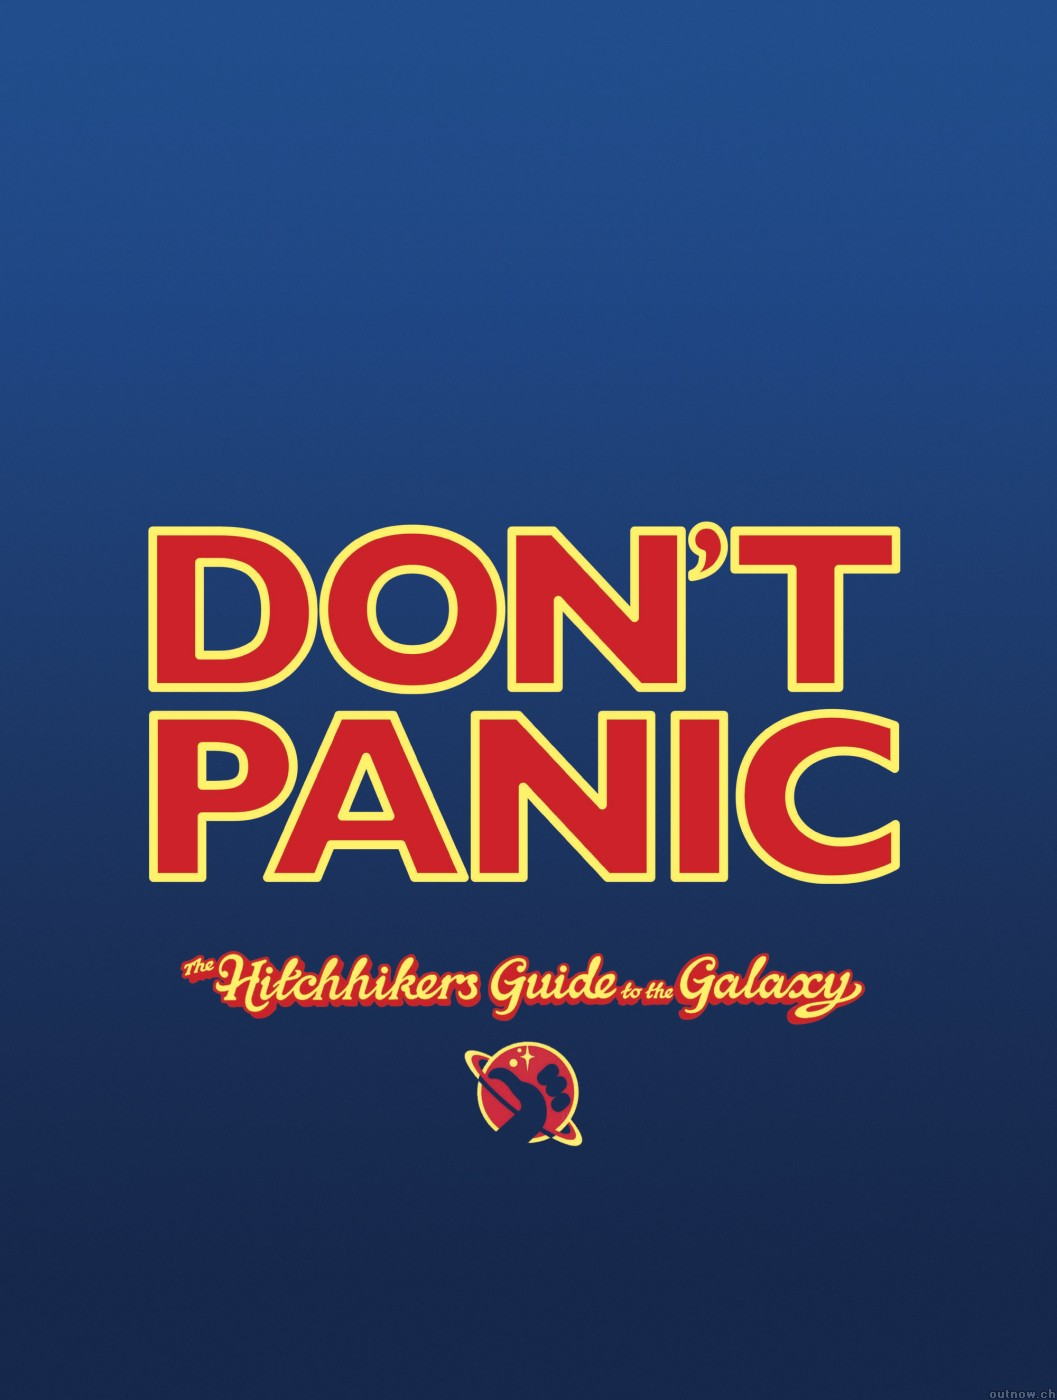 meet the meat hitchhikers guide